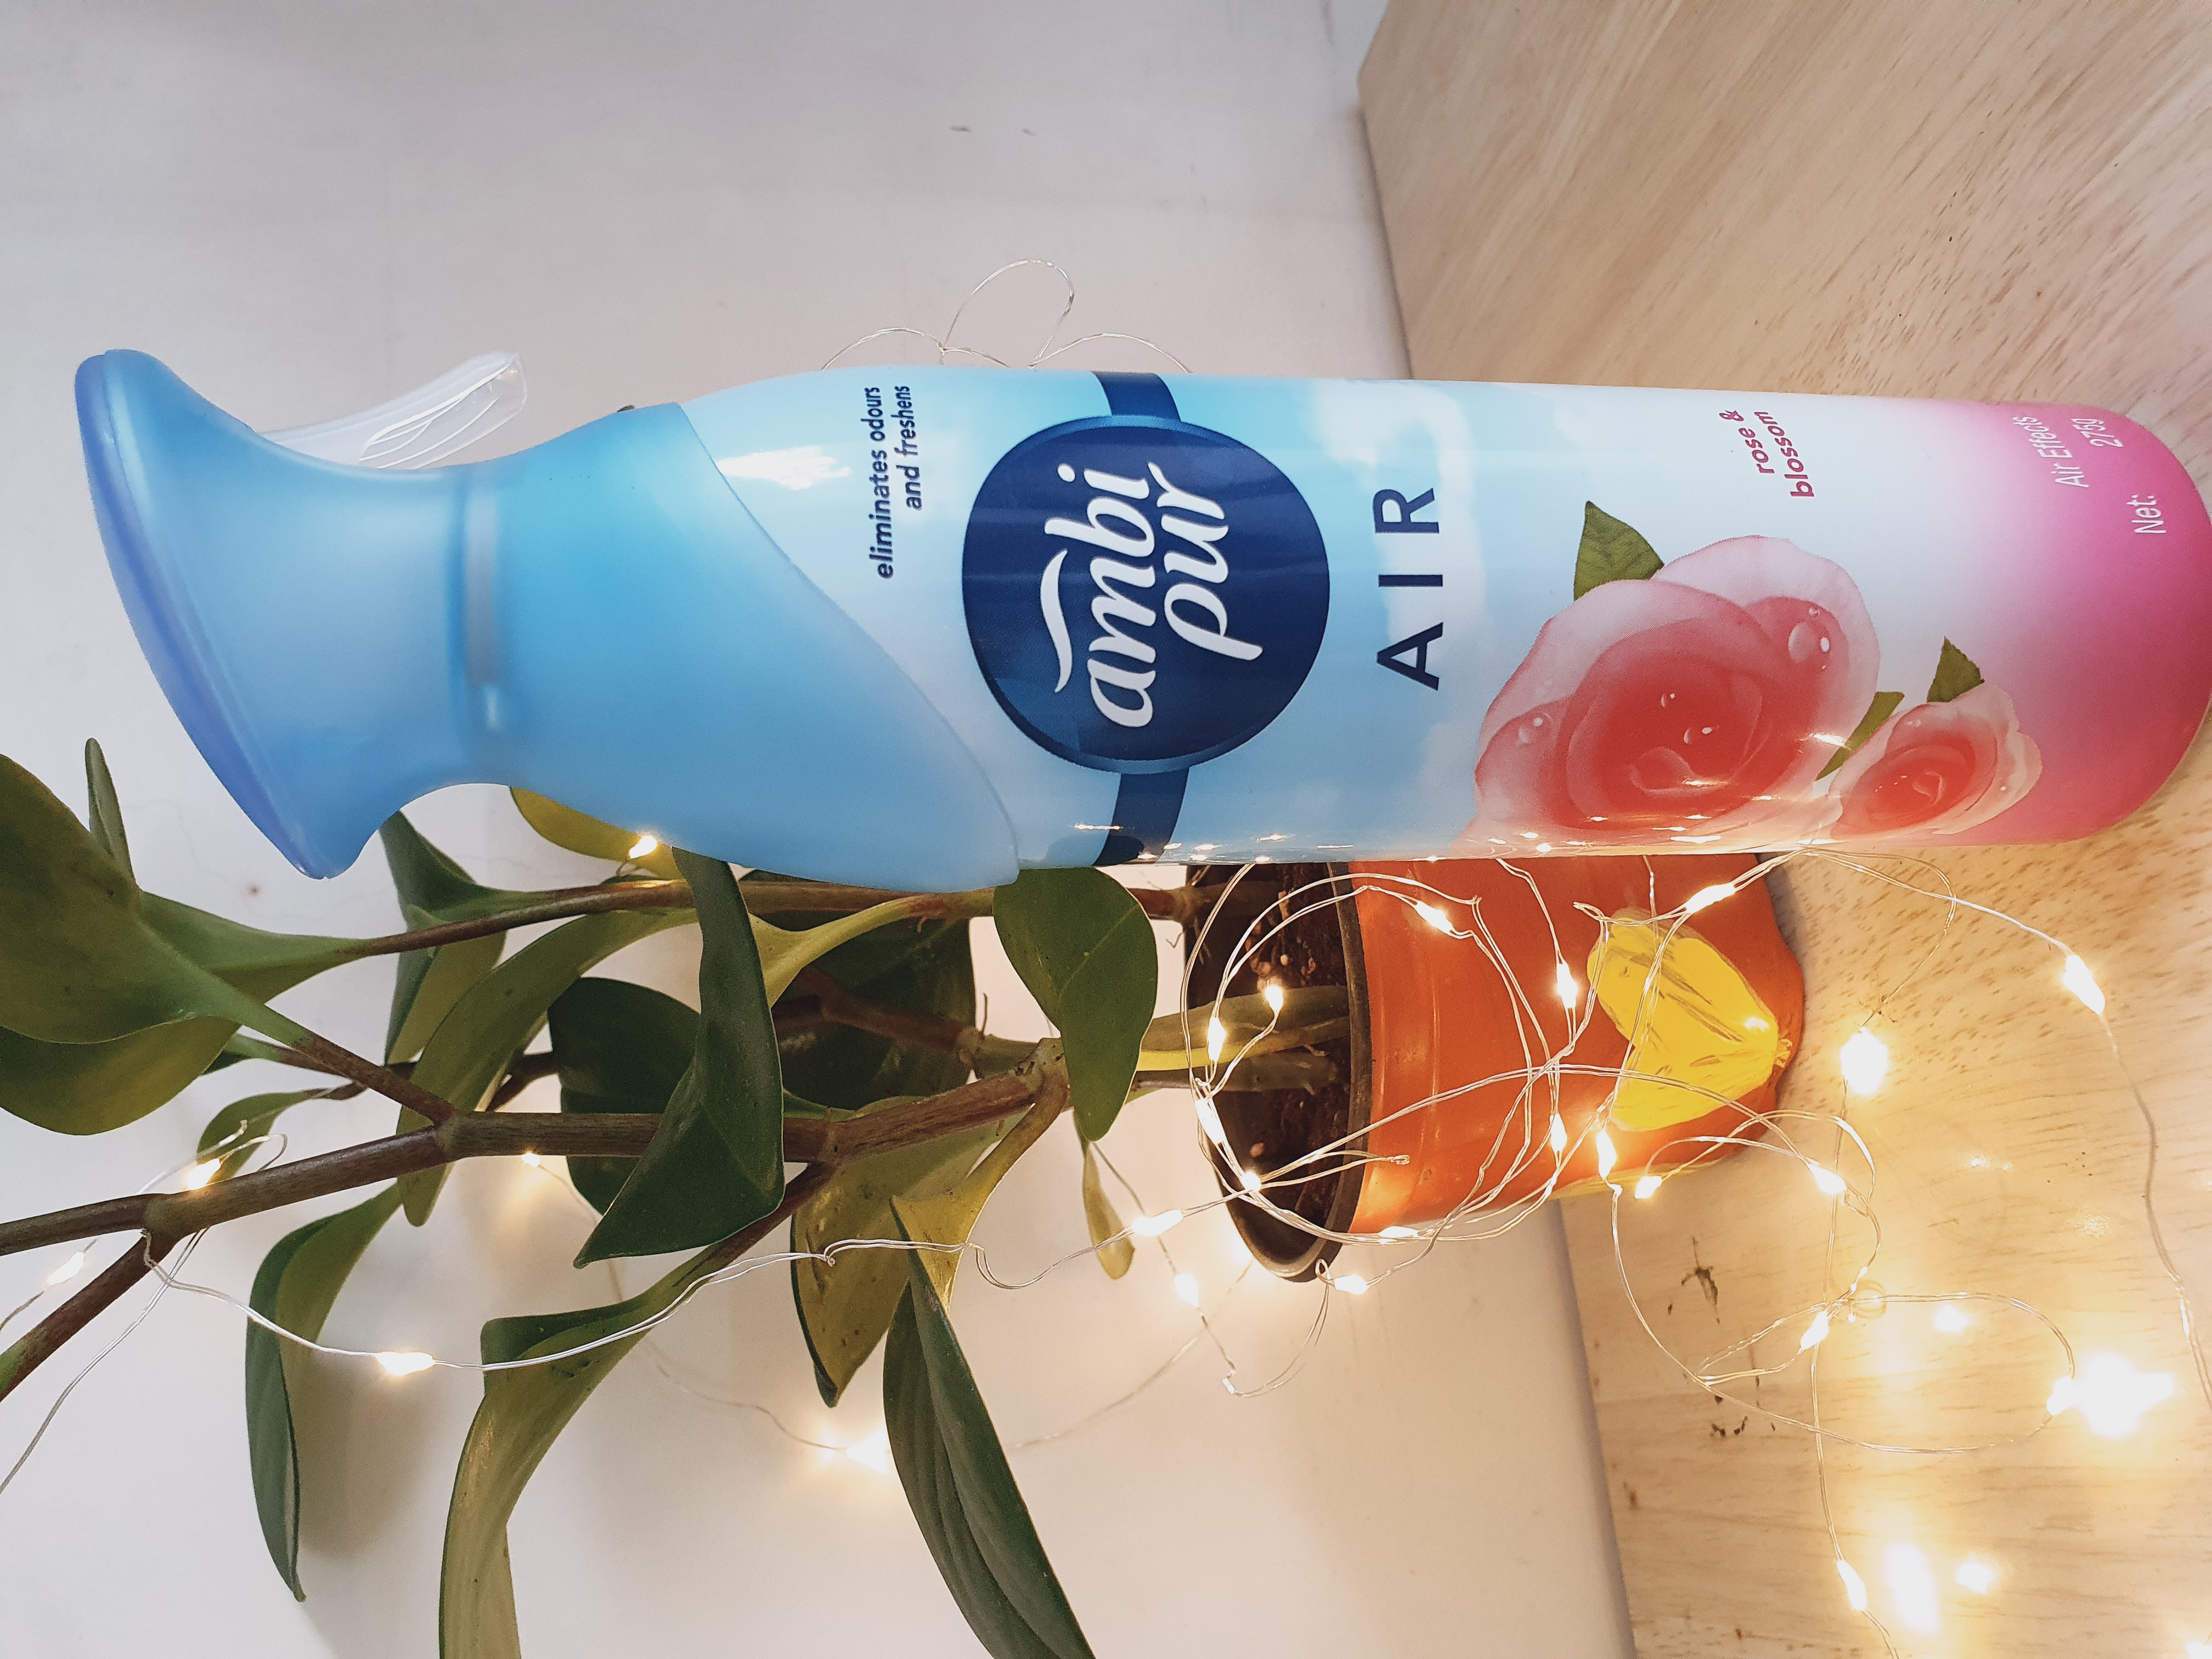 Ambi Pur Air Freshener – Rose and Blossom pic 3-Mild, Fresh and beautiful-By jyoti_s